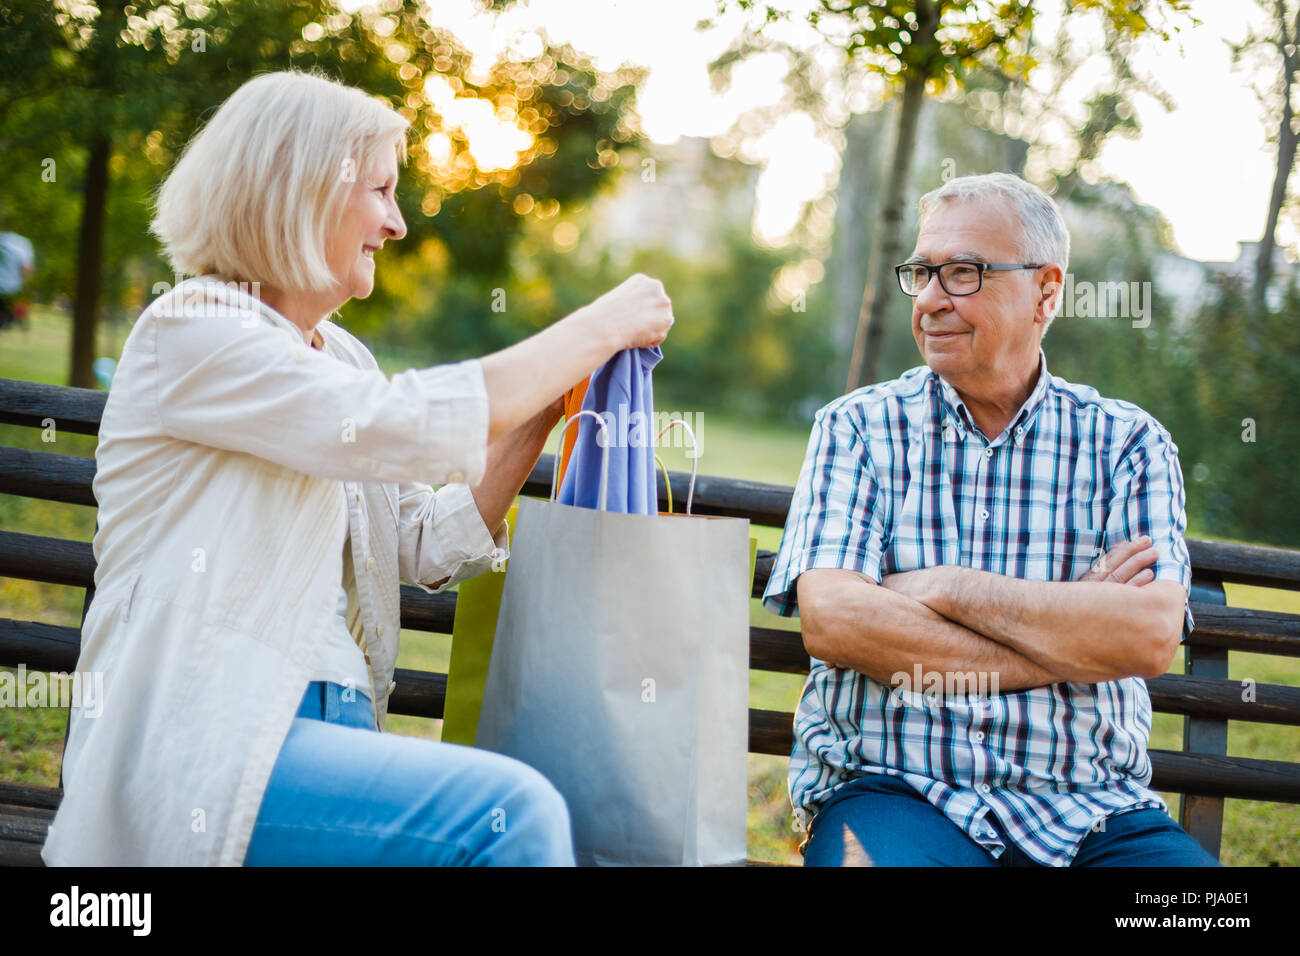 Senior man is angry because his woman is spending money on clothes. - Stock Image